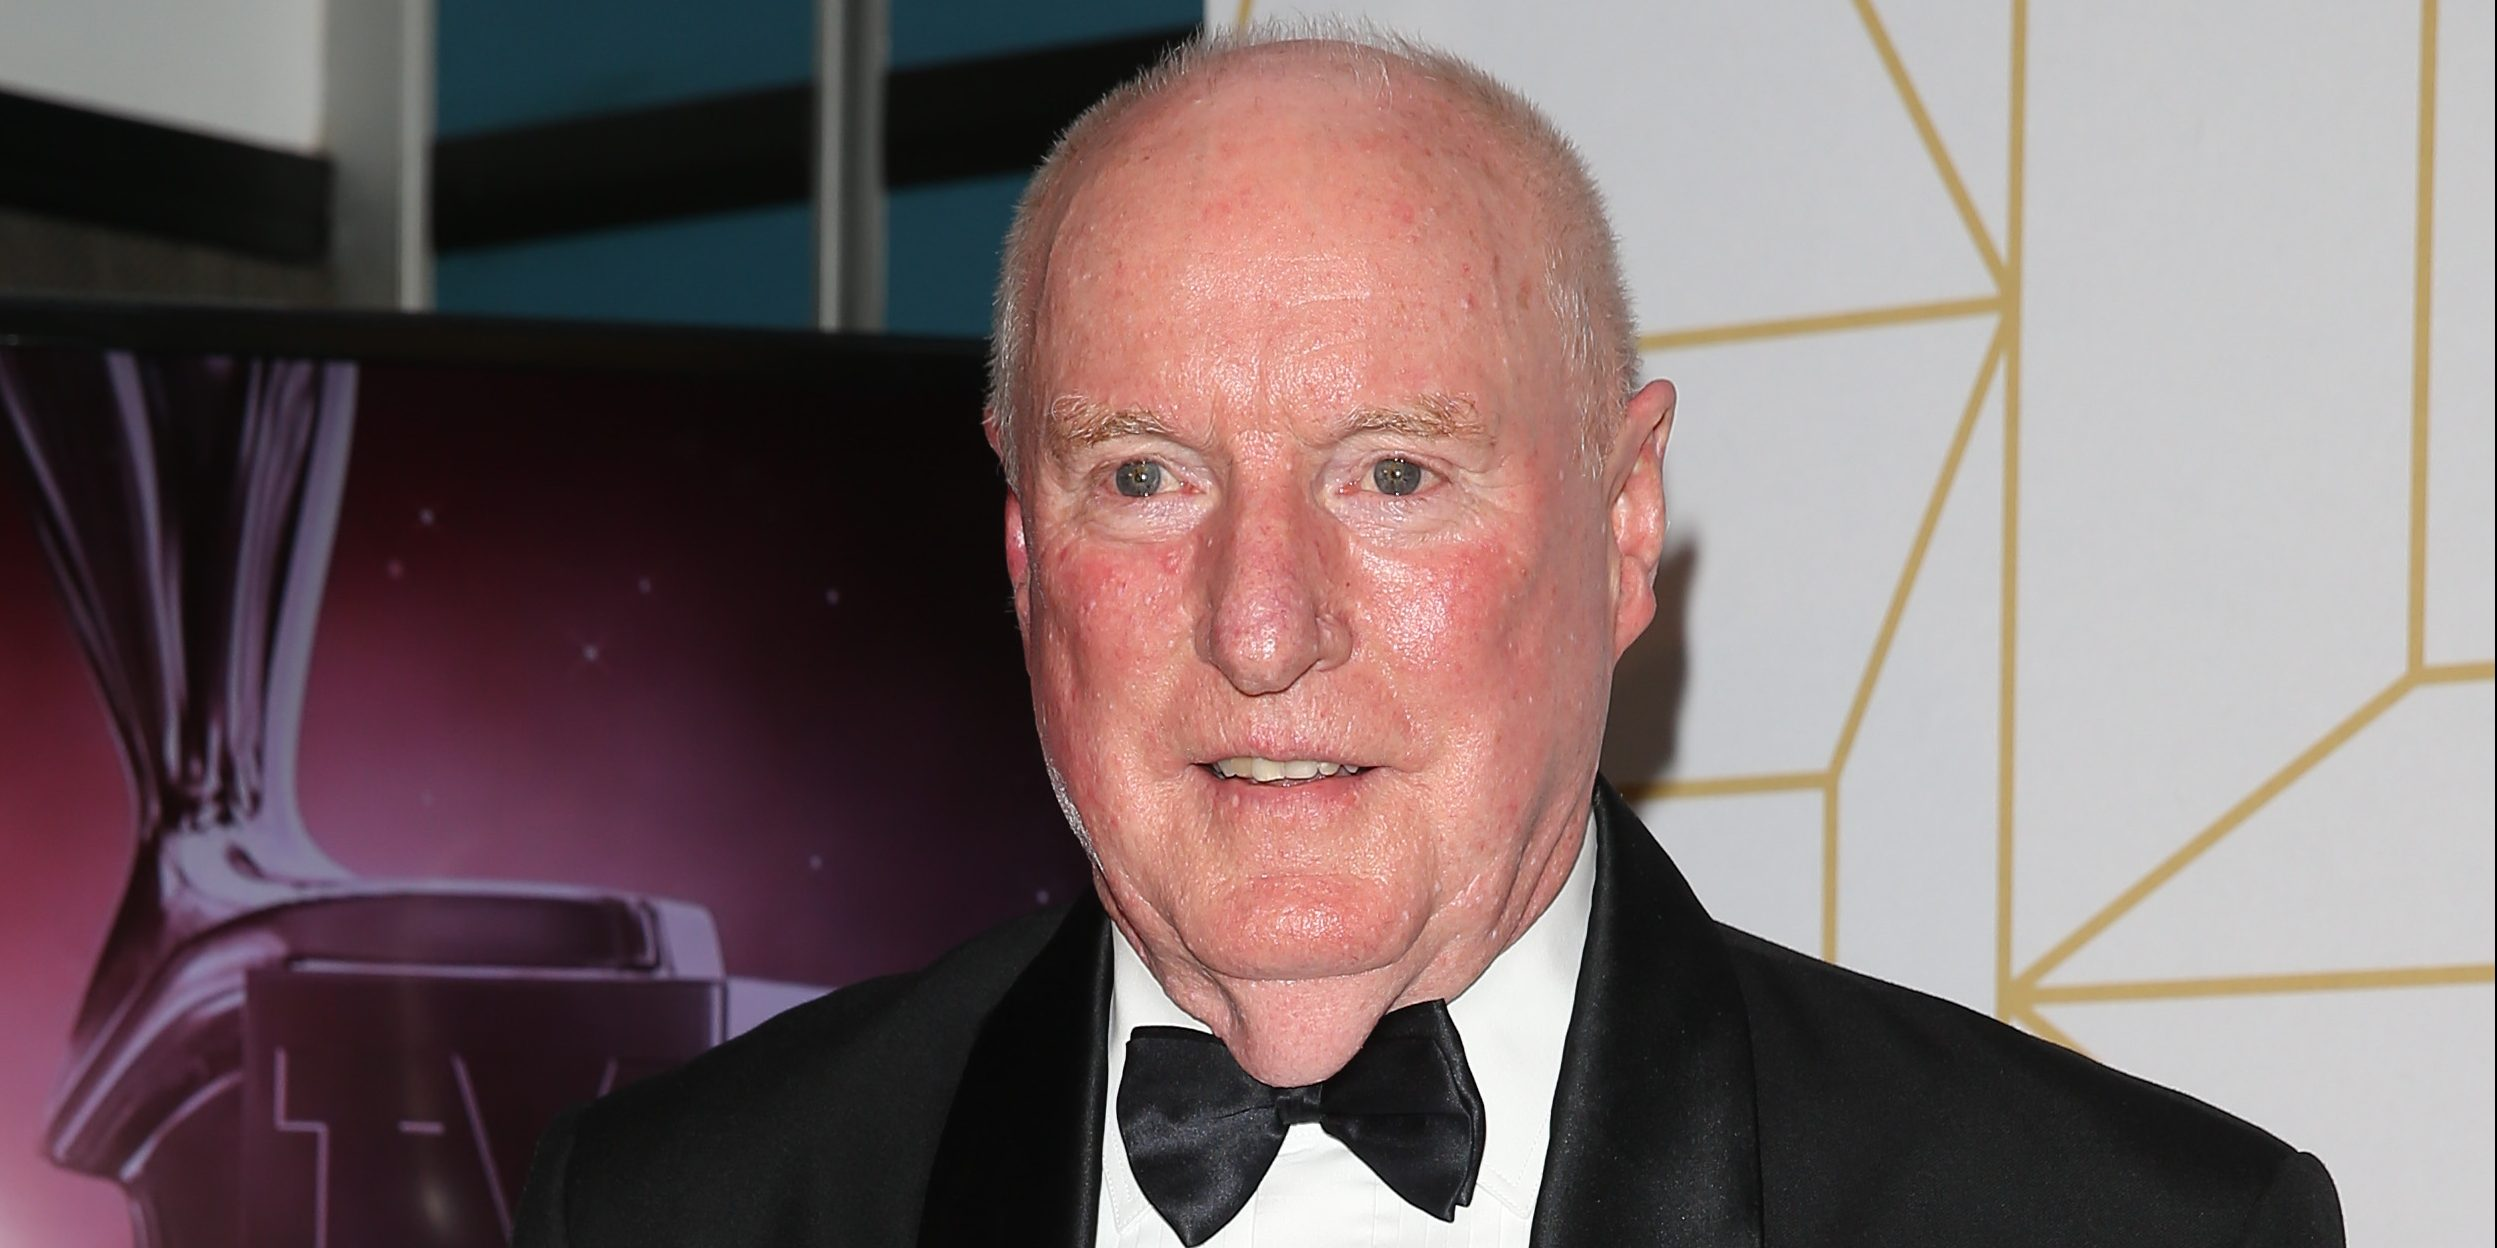 Home and Away's Ray Meagher speaks out following emergency heart surgery